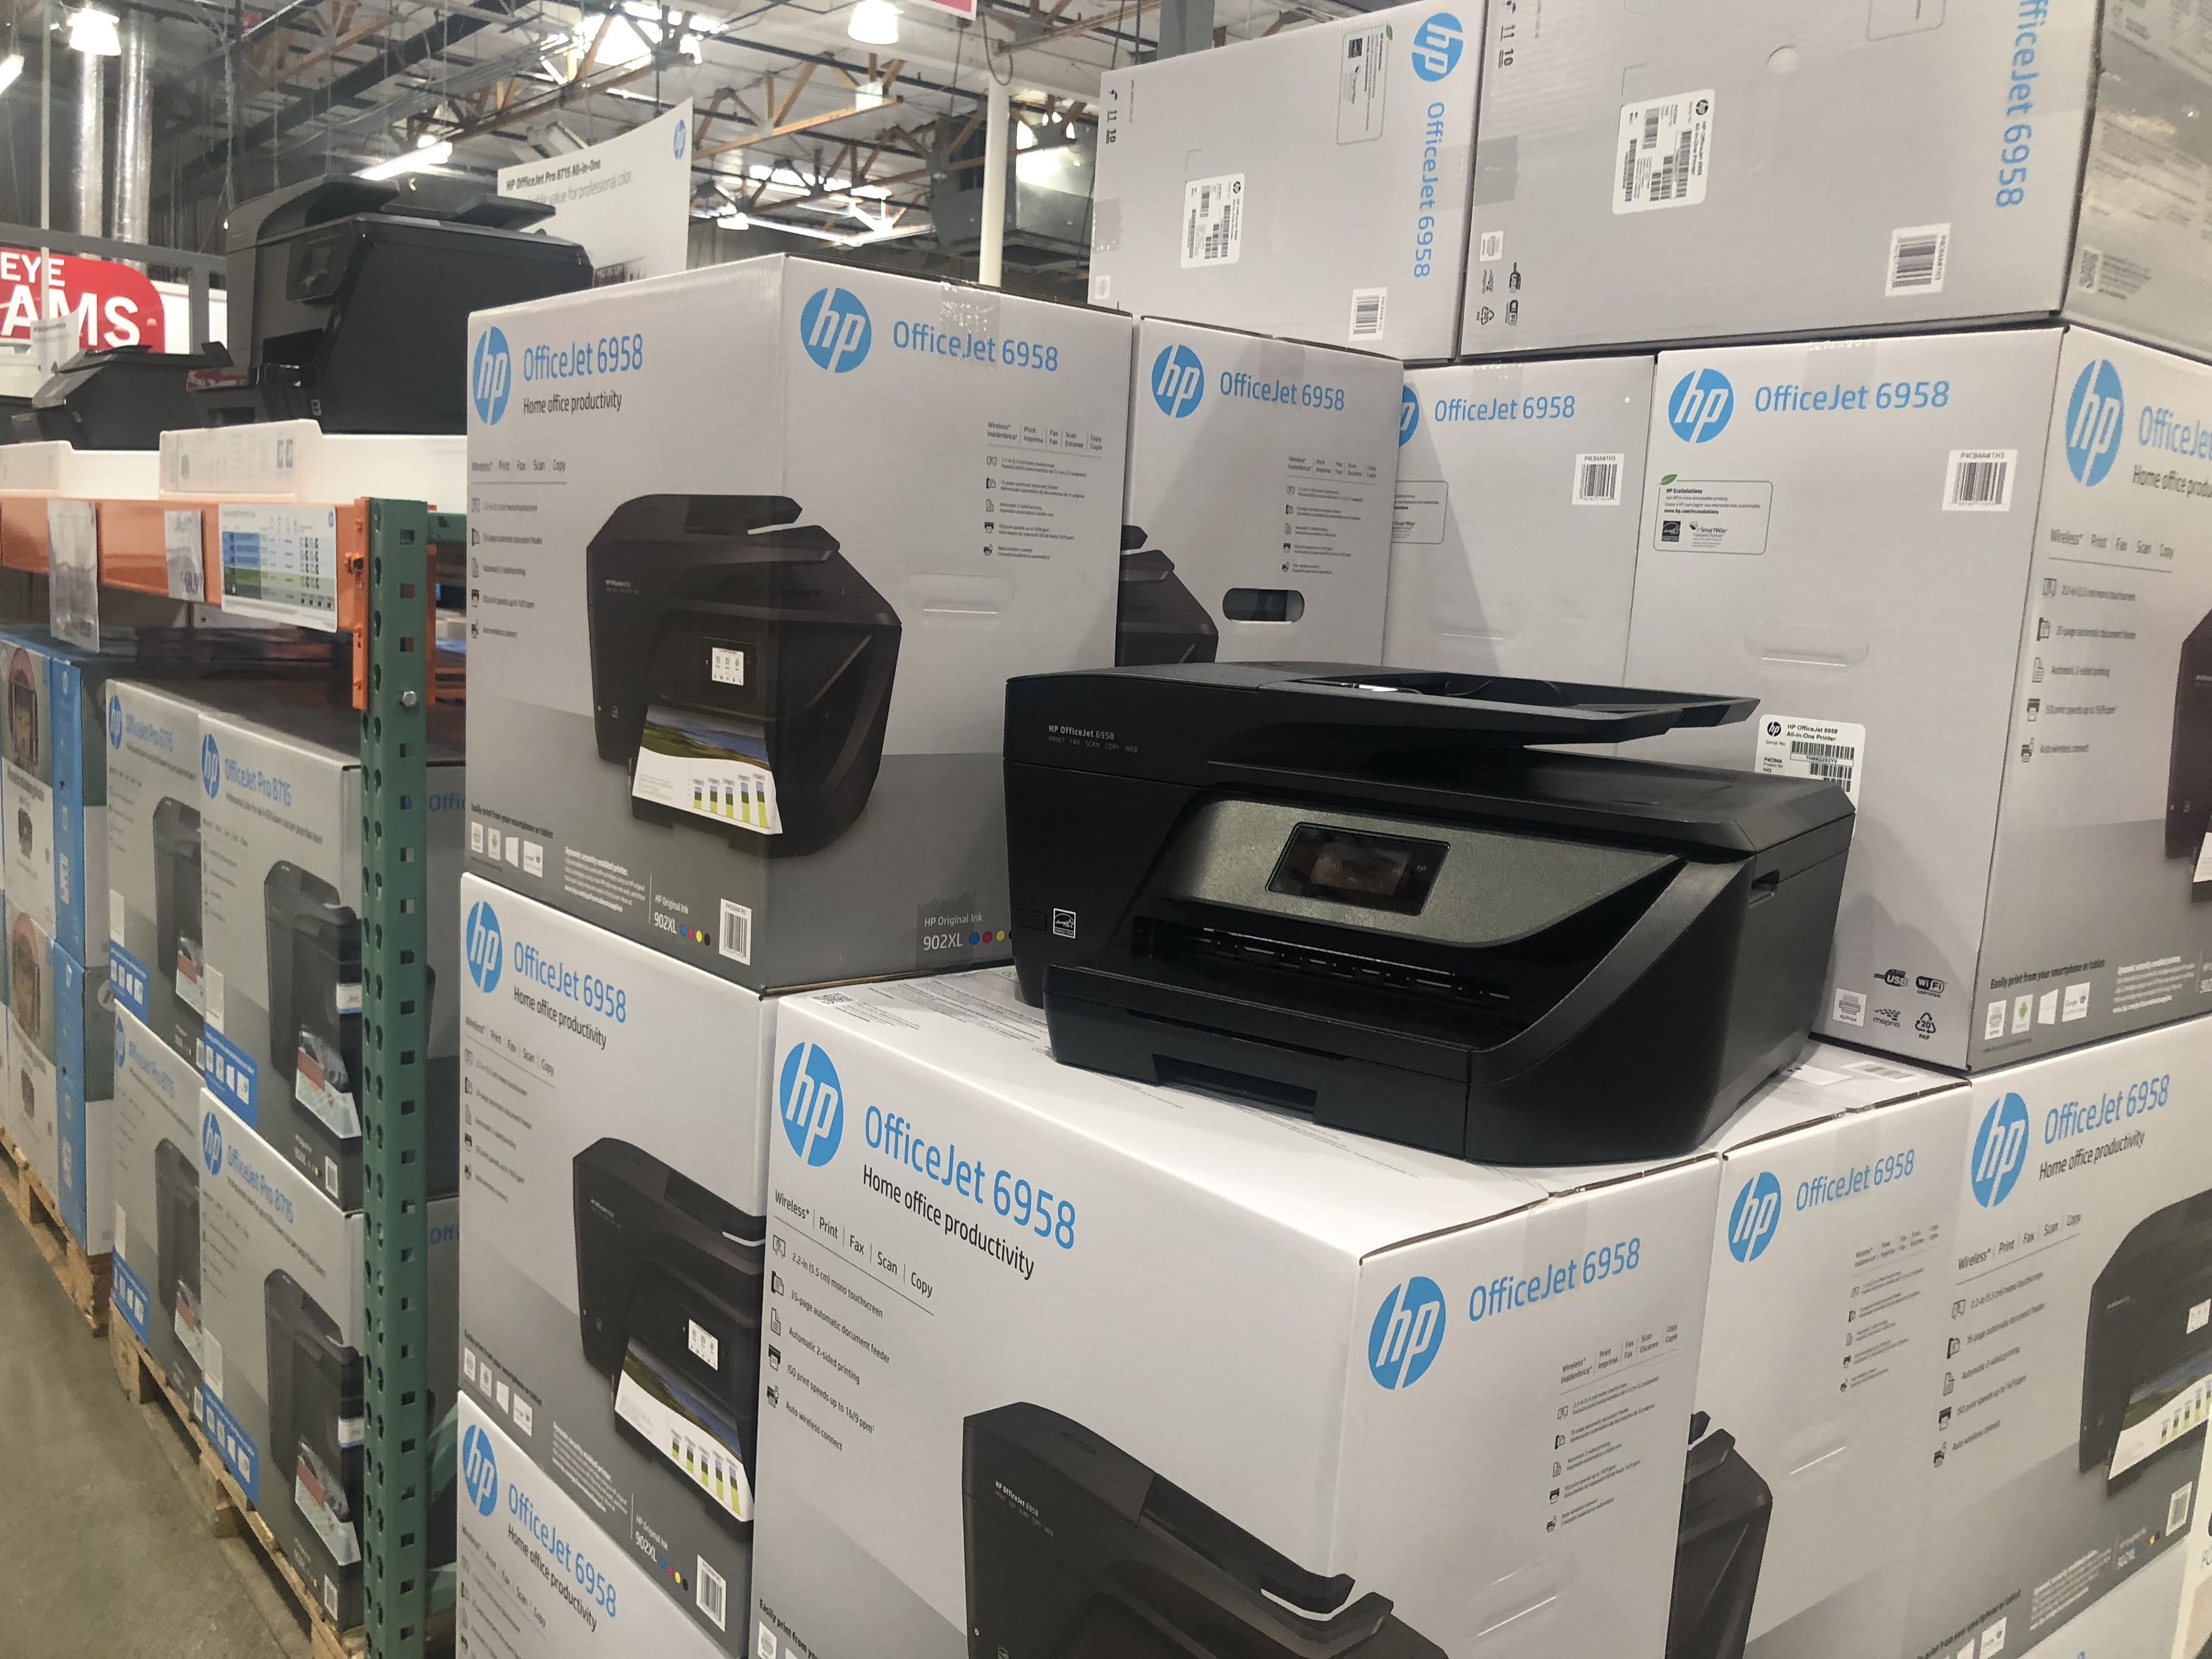 Costco Monthly Deals for September 2018 - HP OfficeJet Printer at Costco